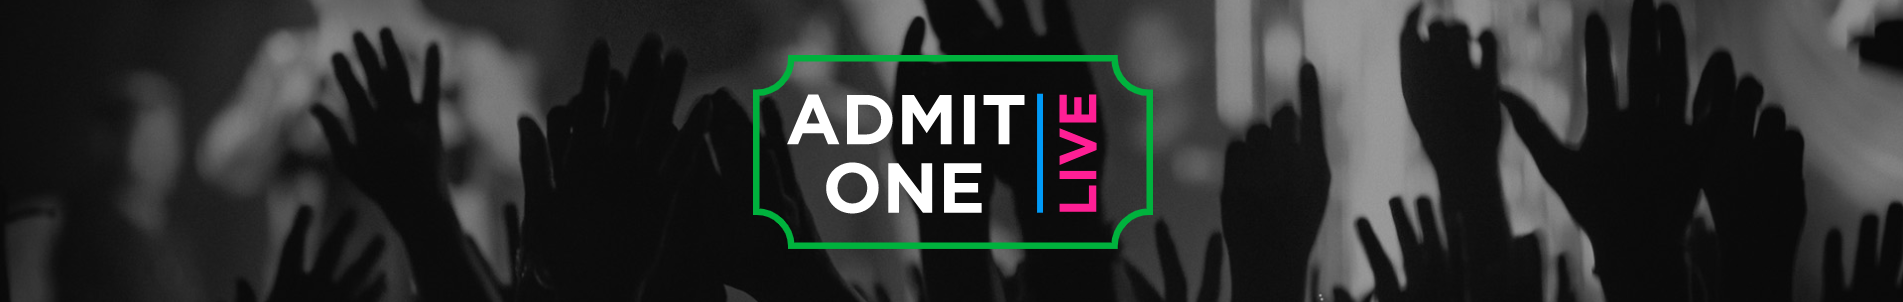 Tickets for MRG Live Presents: Limblifter in Vancouver from Admit One Live